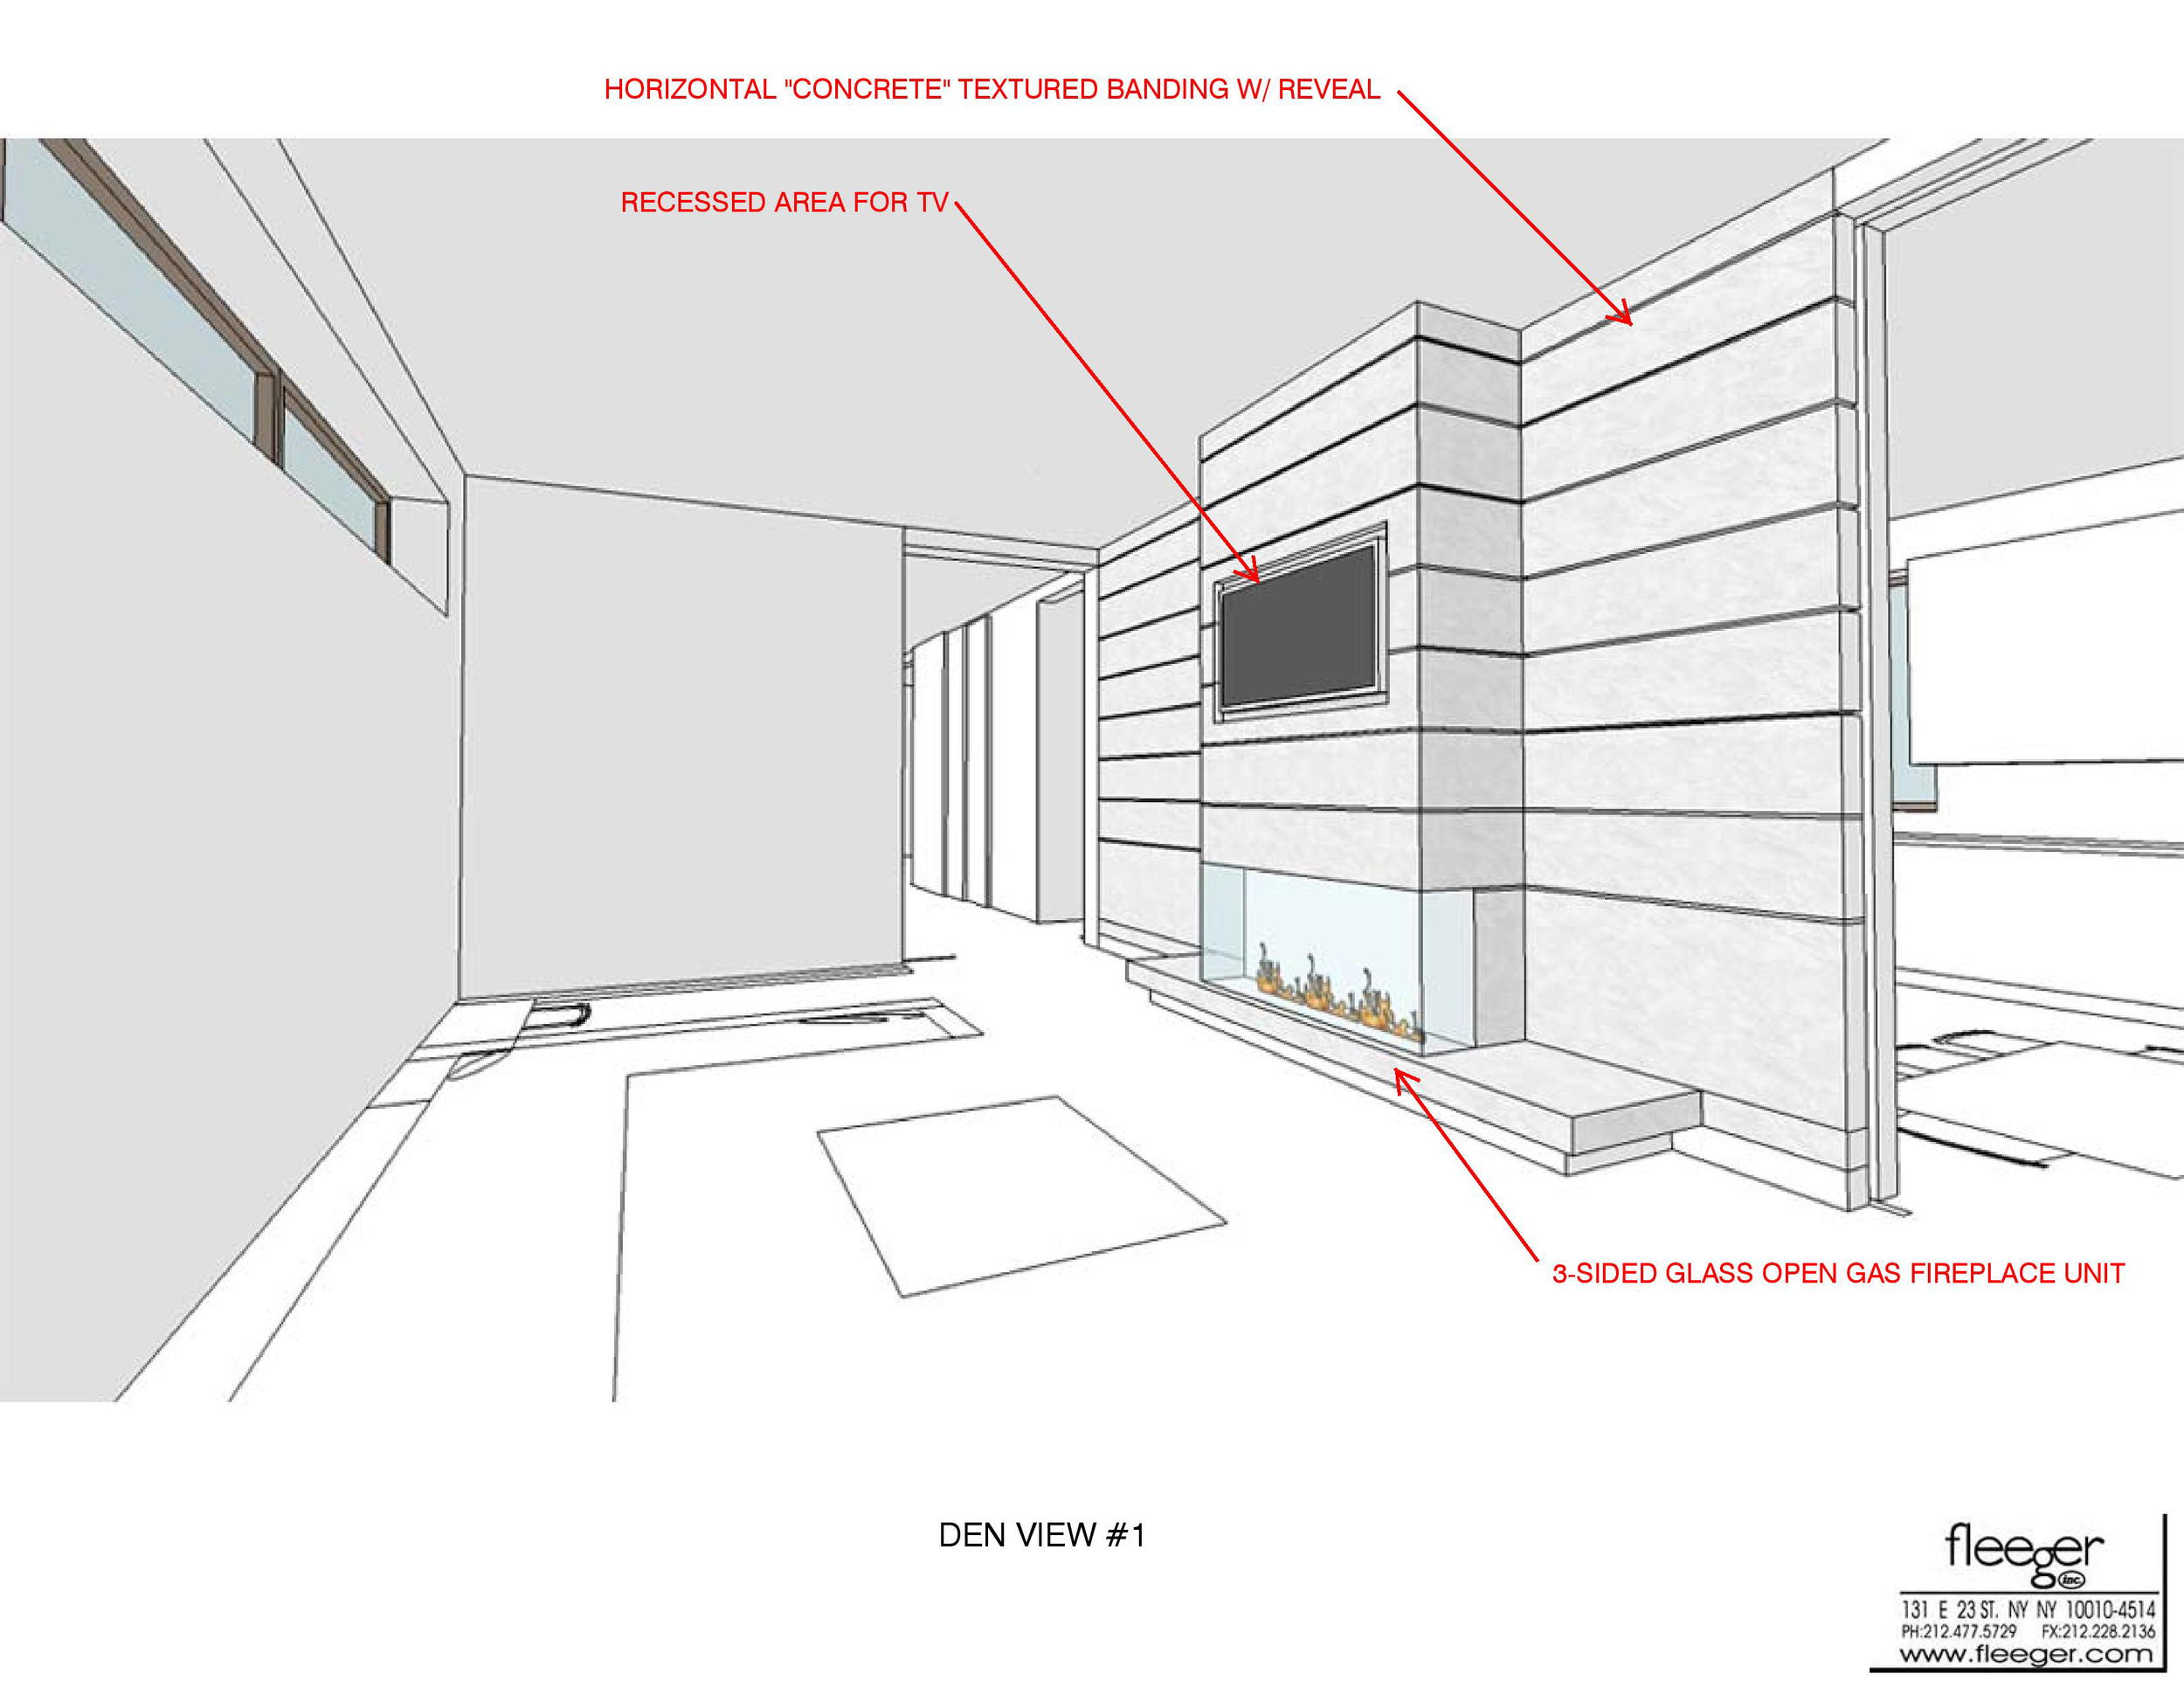 Khaski INTERIOR VIEWS COMBINED-page-005.jpg